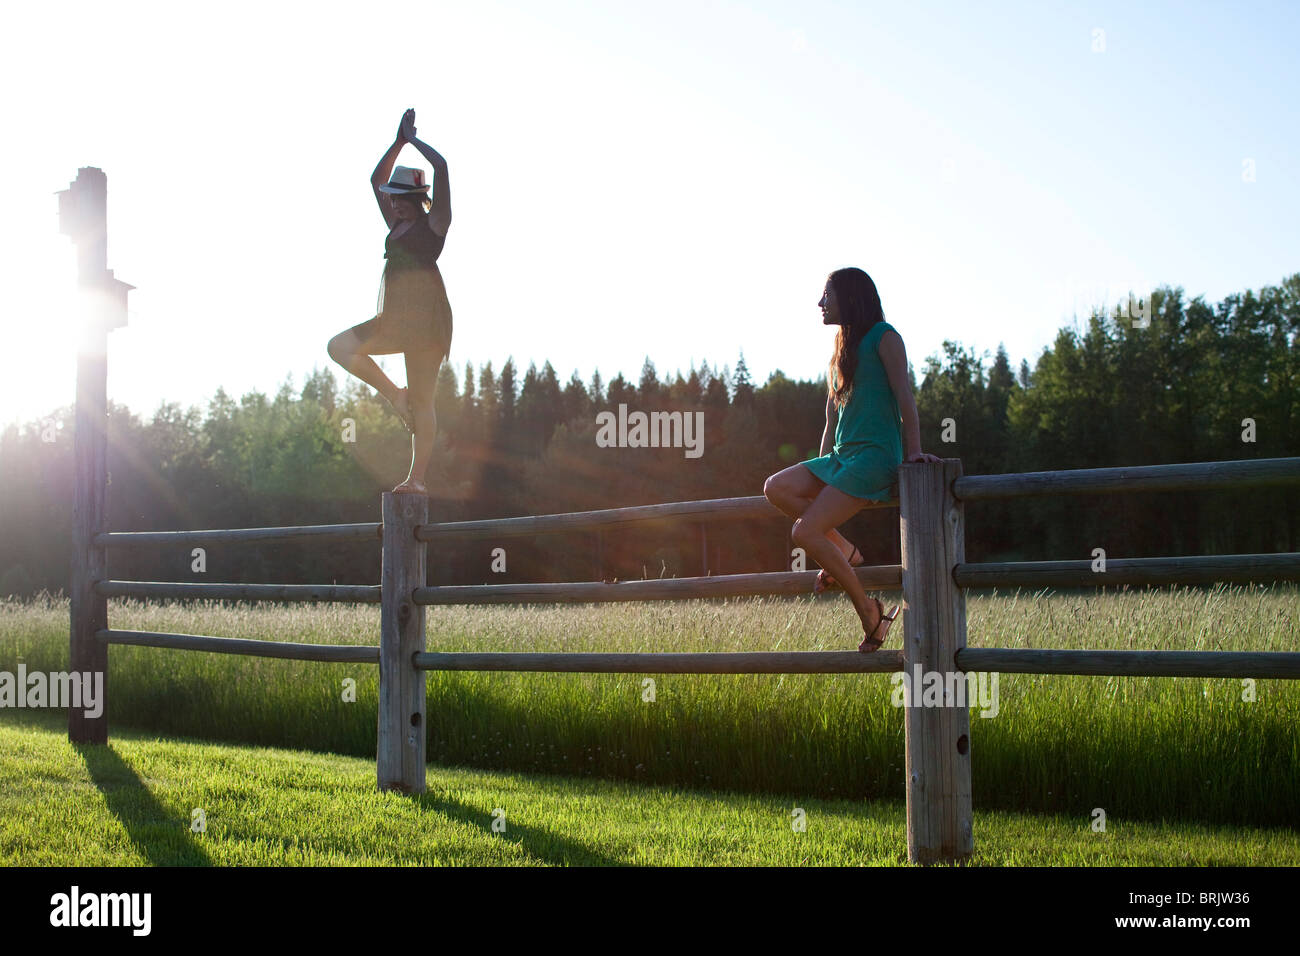 Two young women balancing on a wooden fence next to a green field. Stock Photo